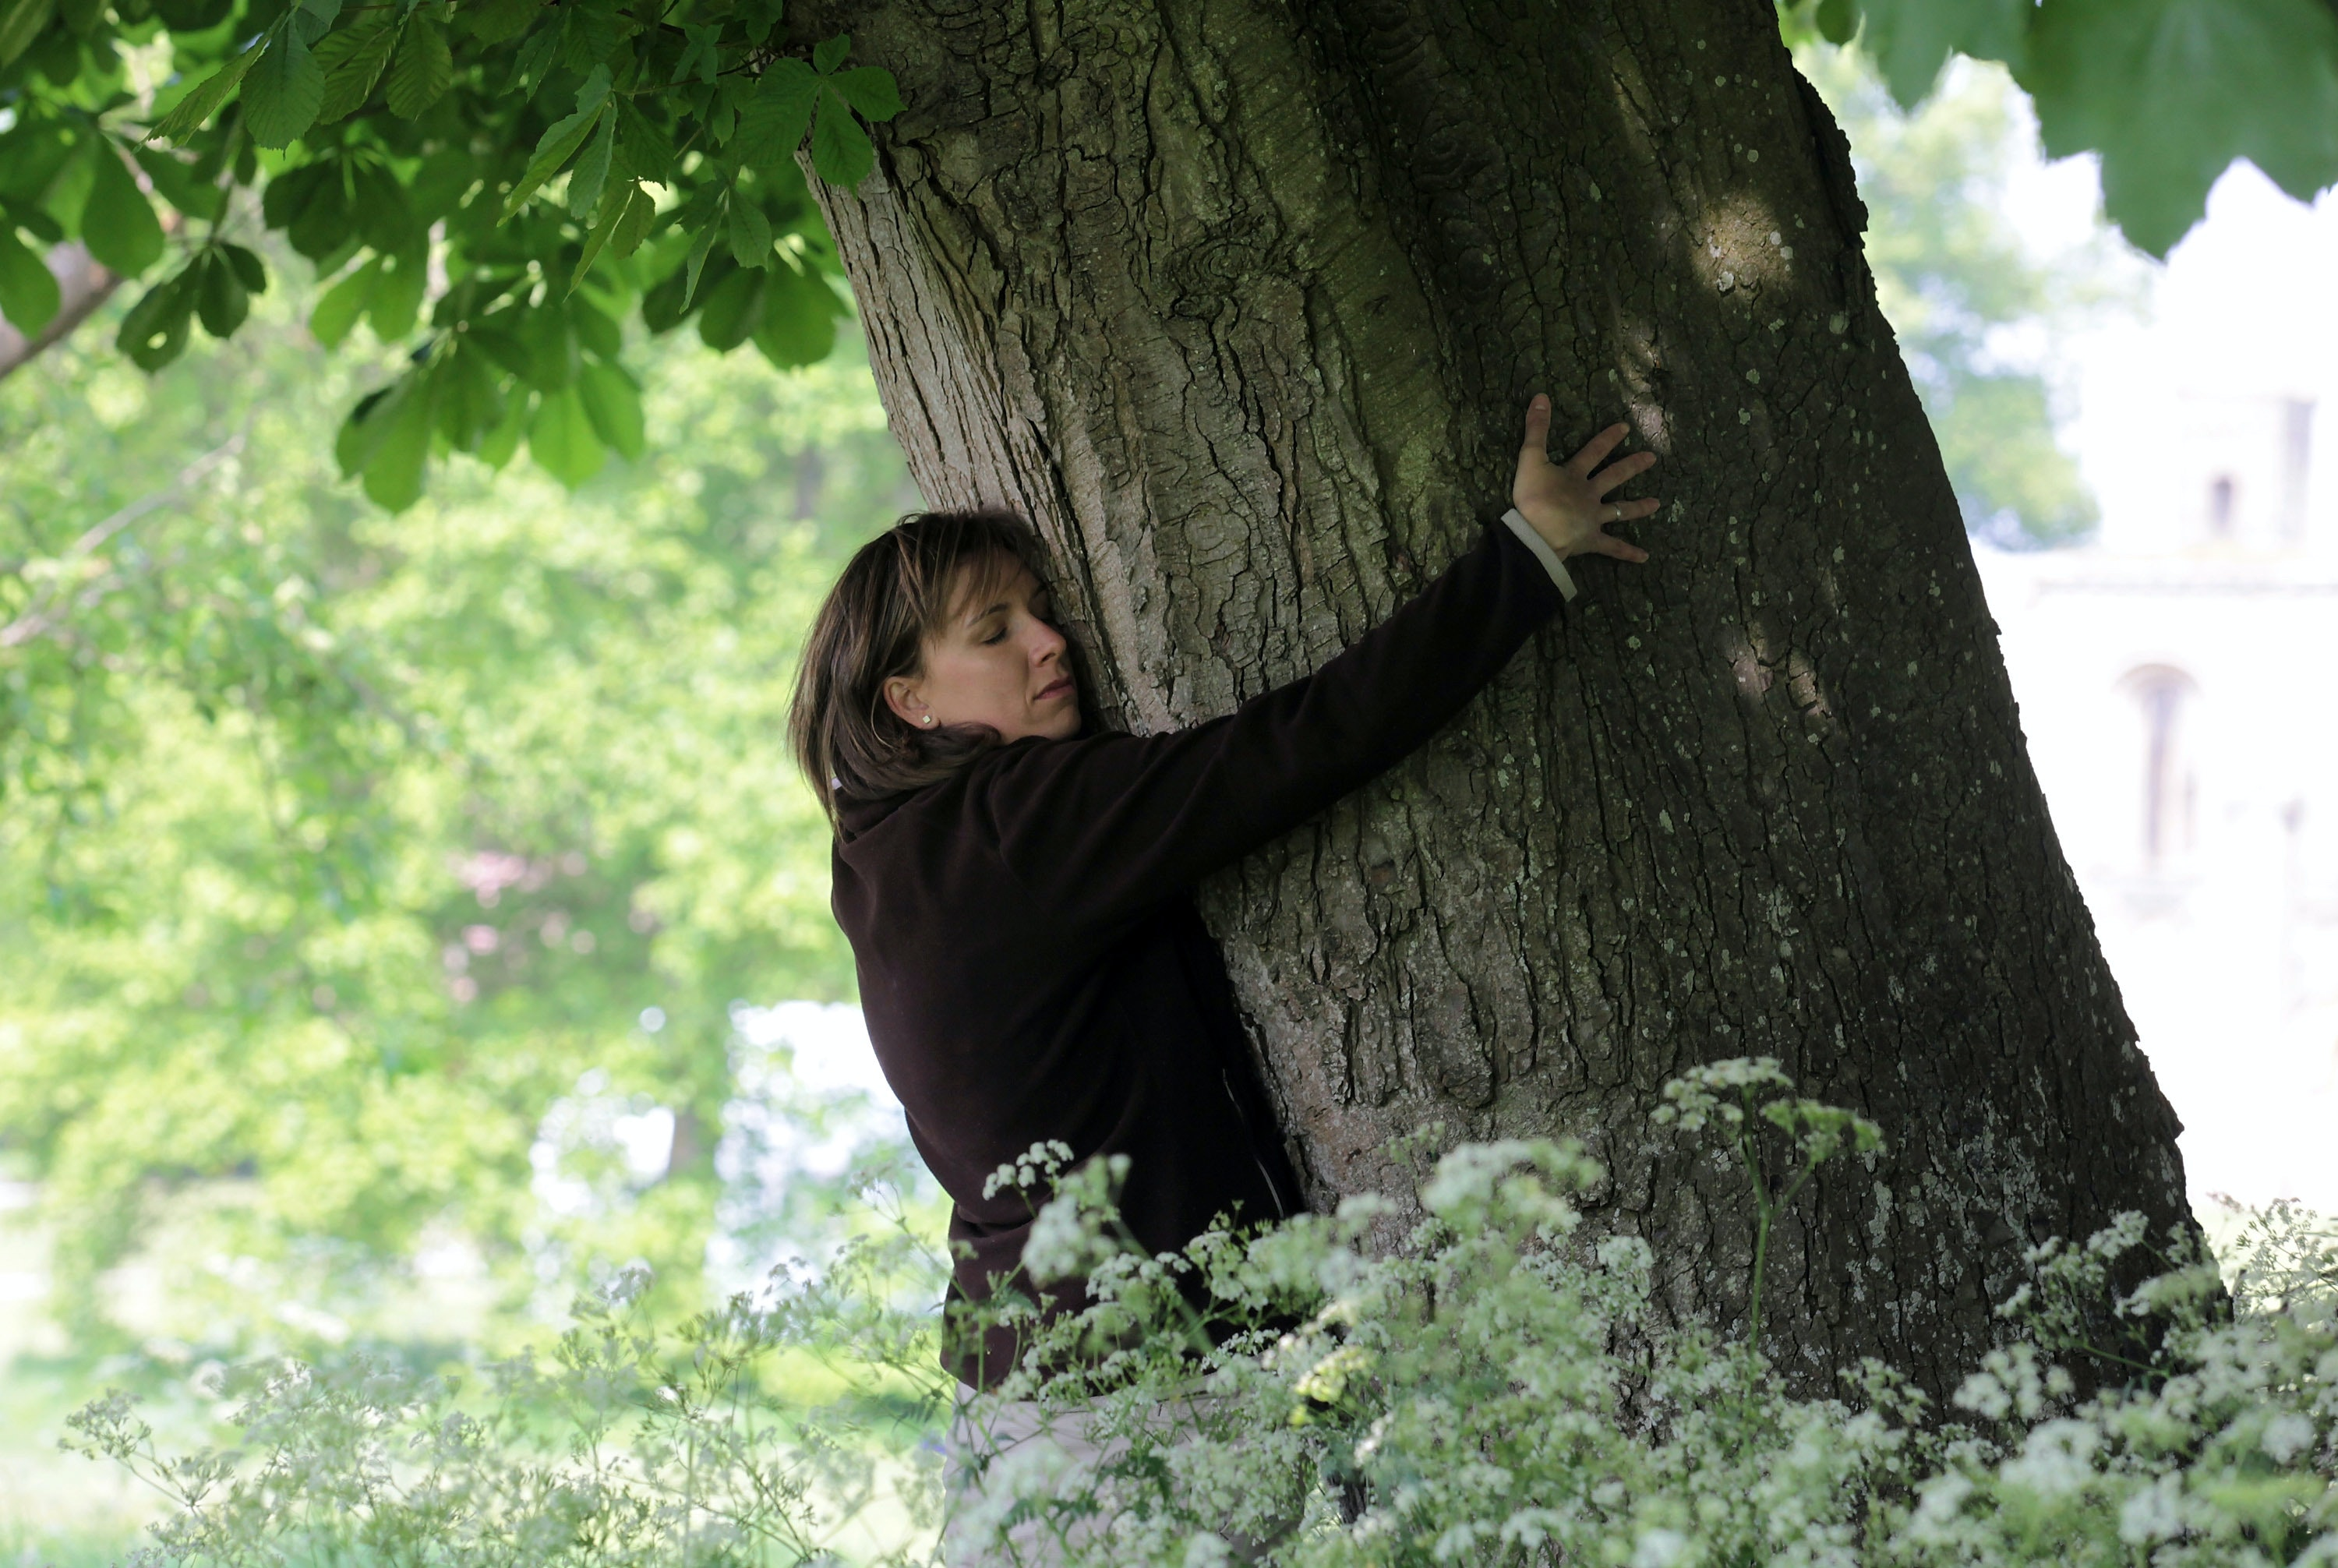 Having a sexual attraction to trees